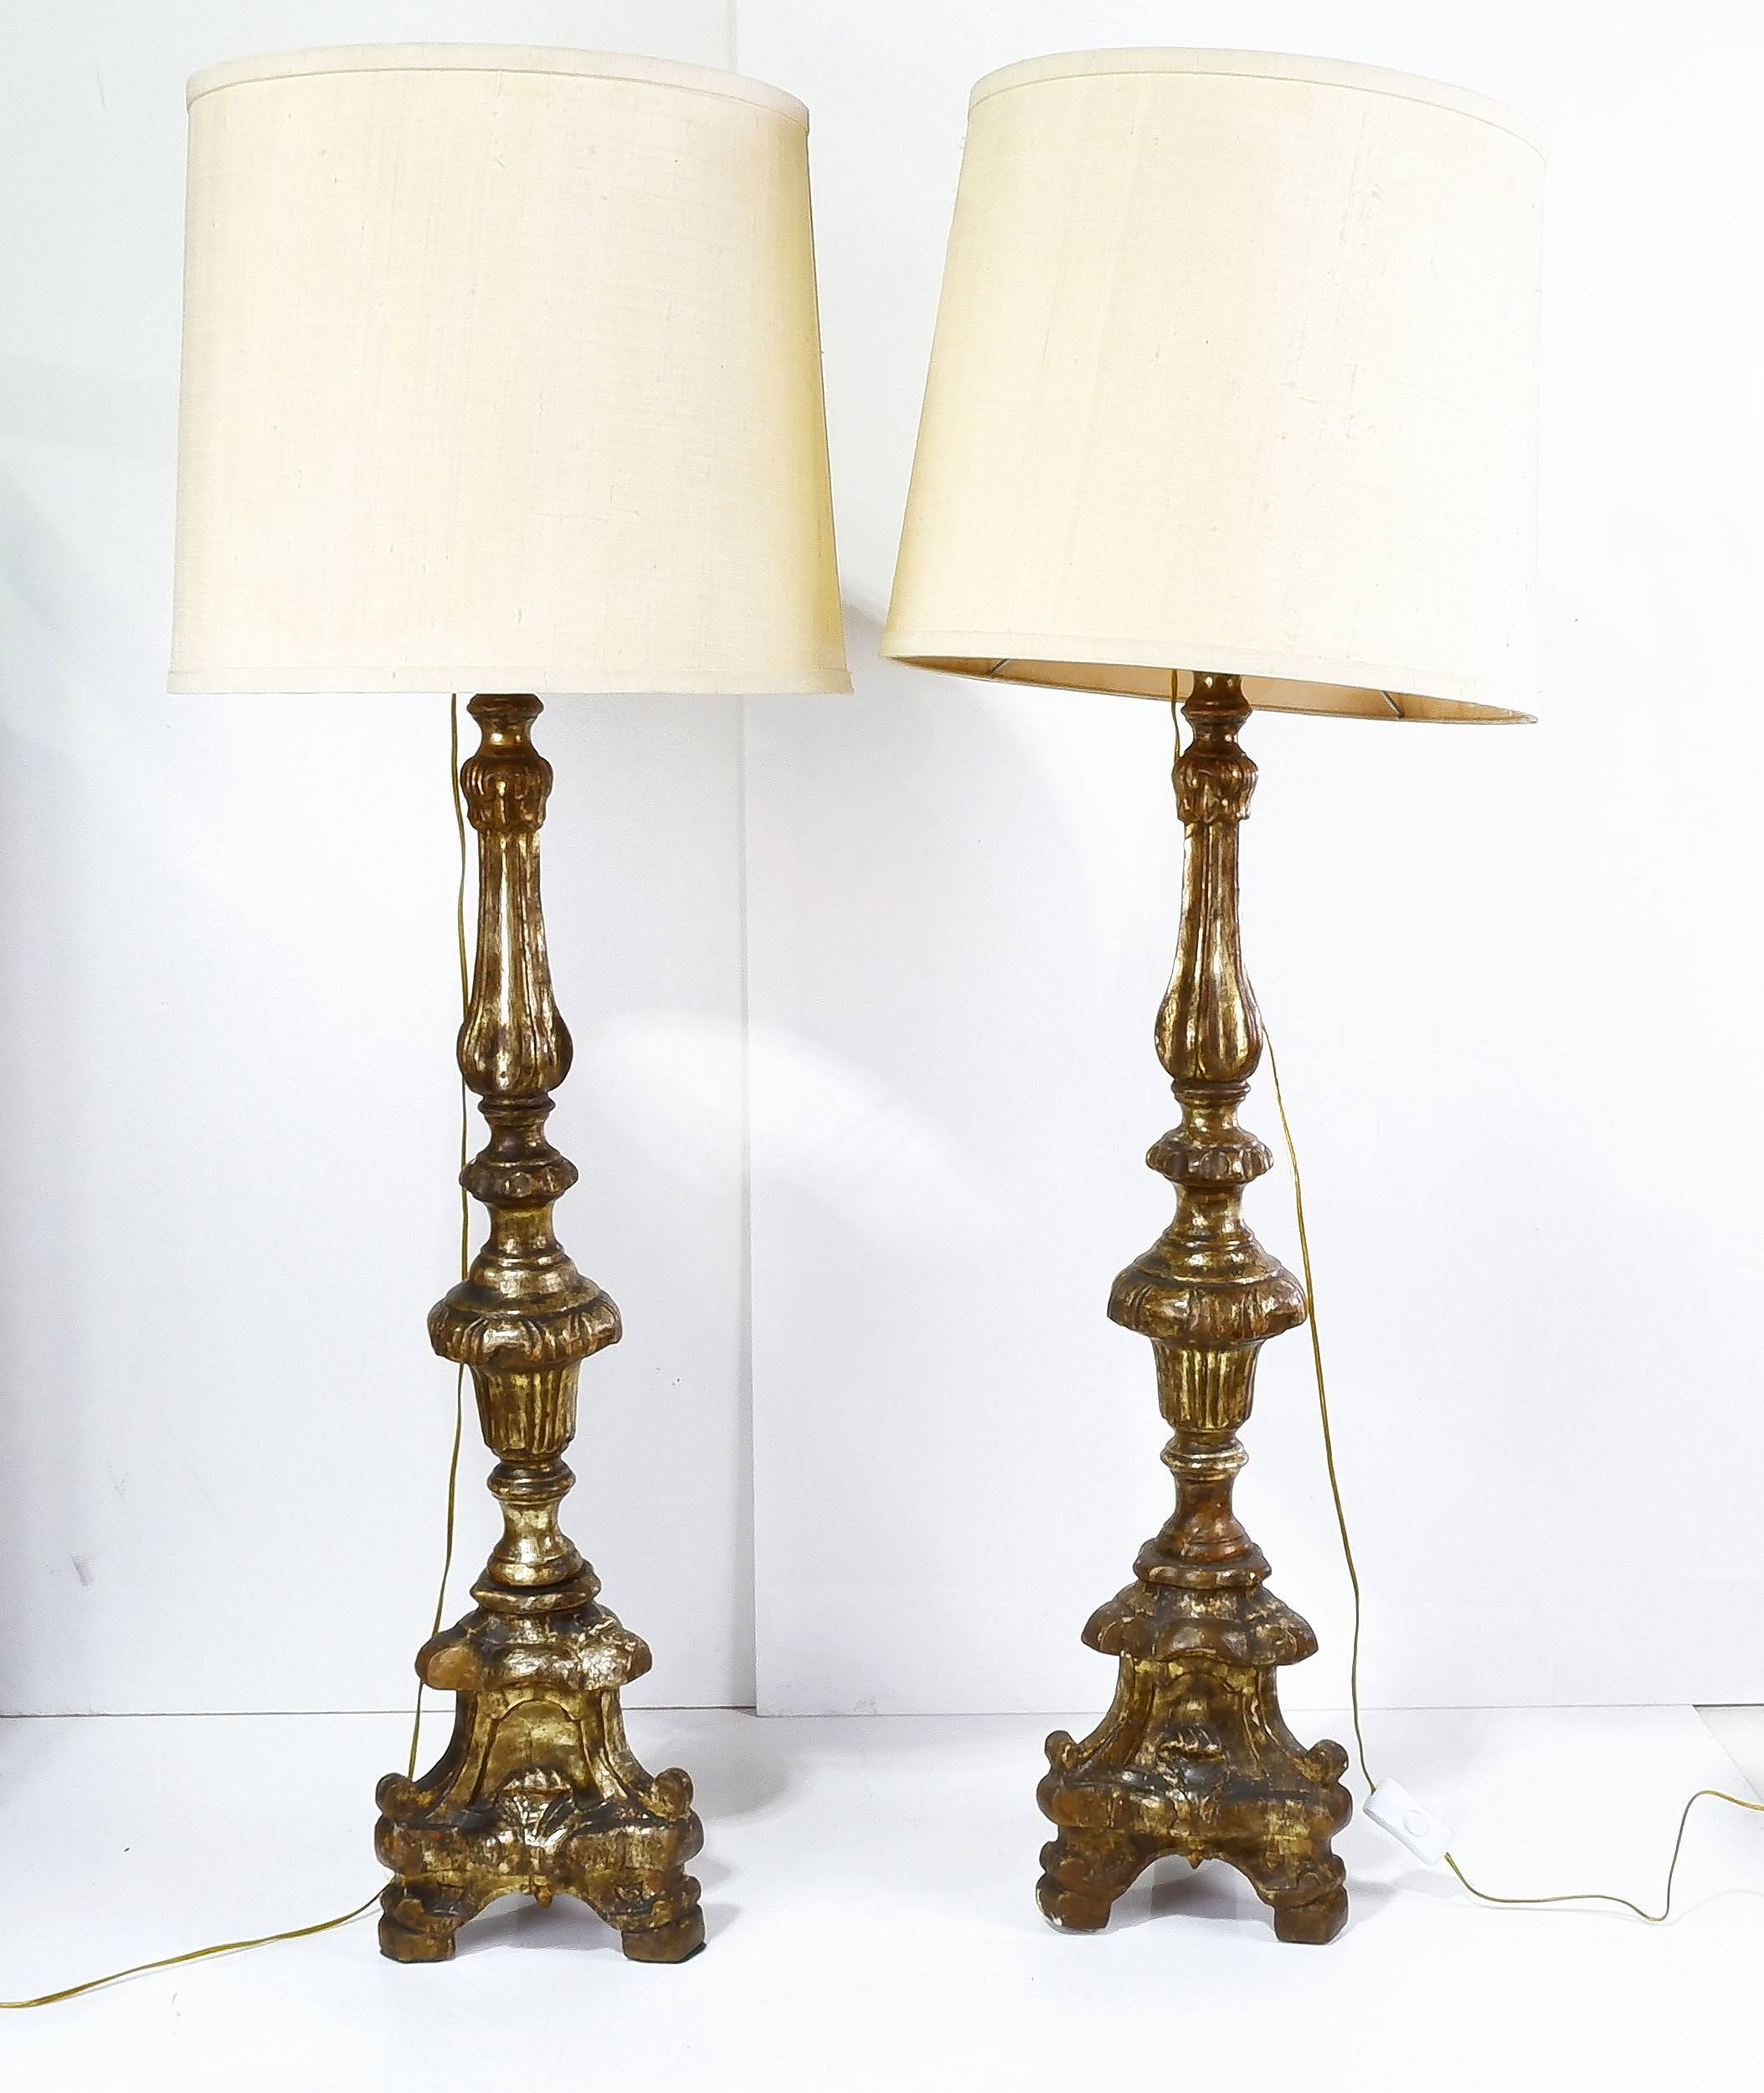 'Pair of Carved Giltwood Torchere Table Lamps'